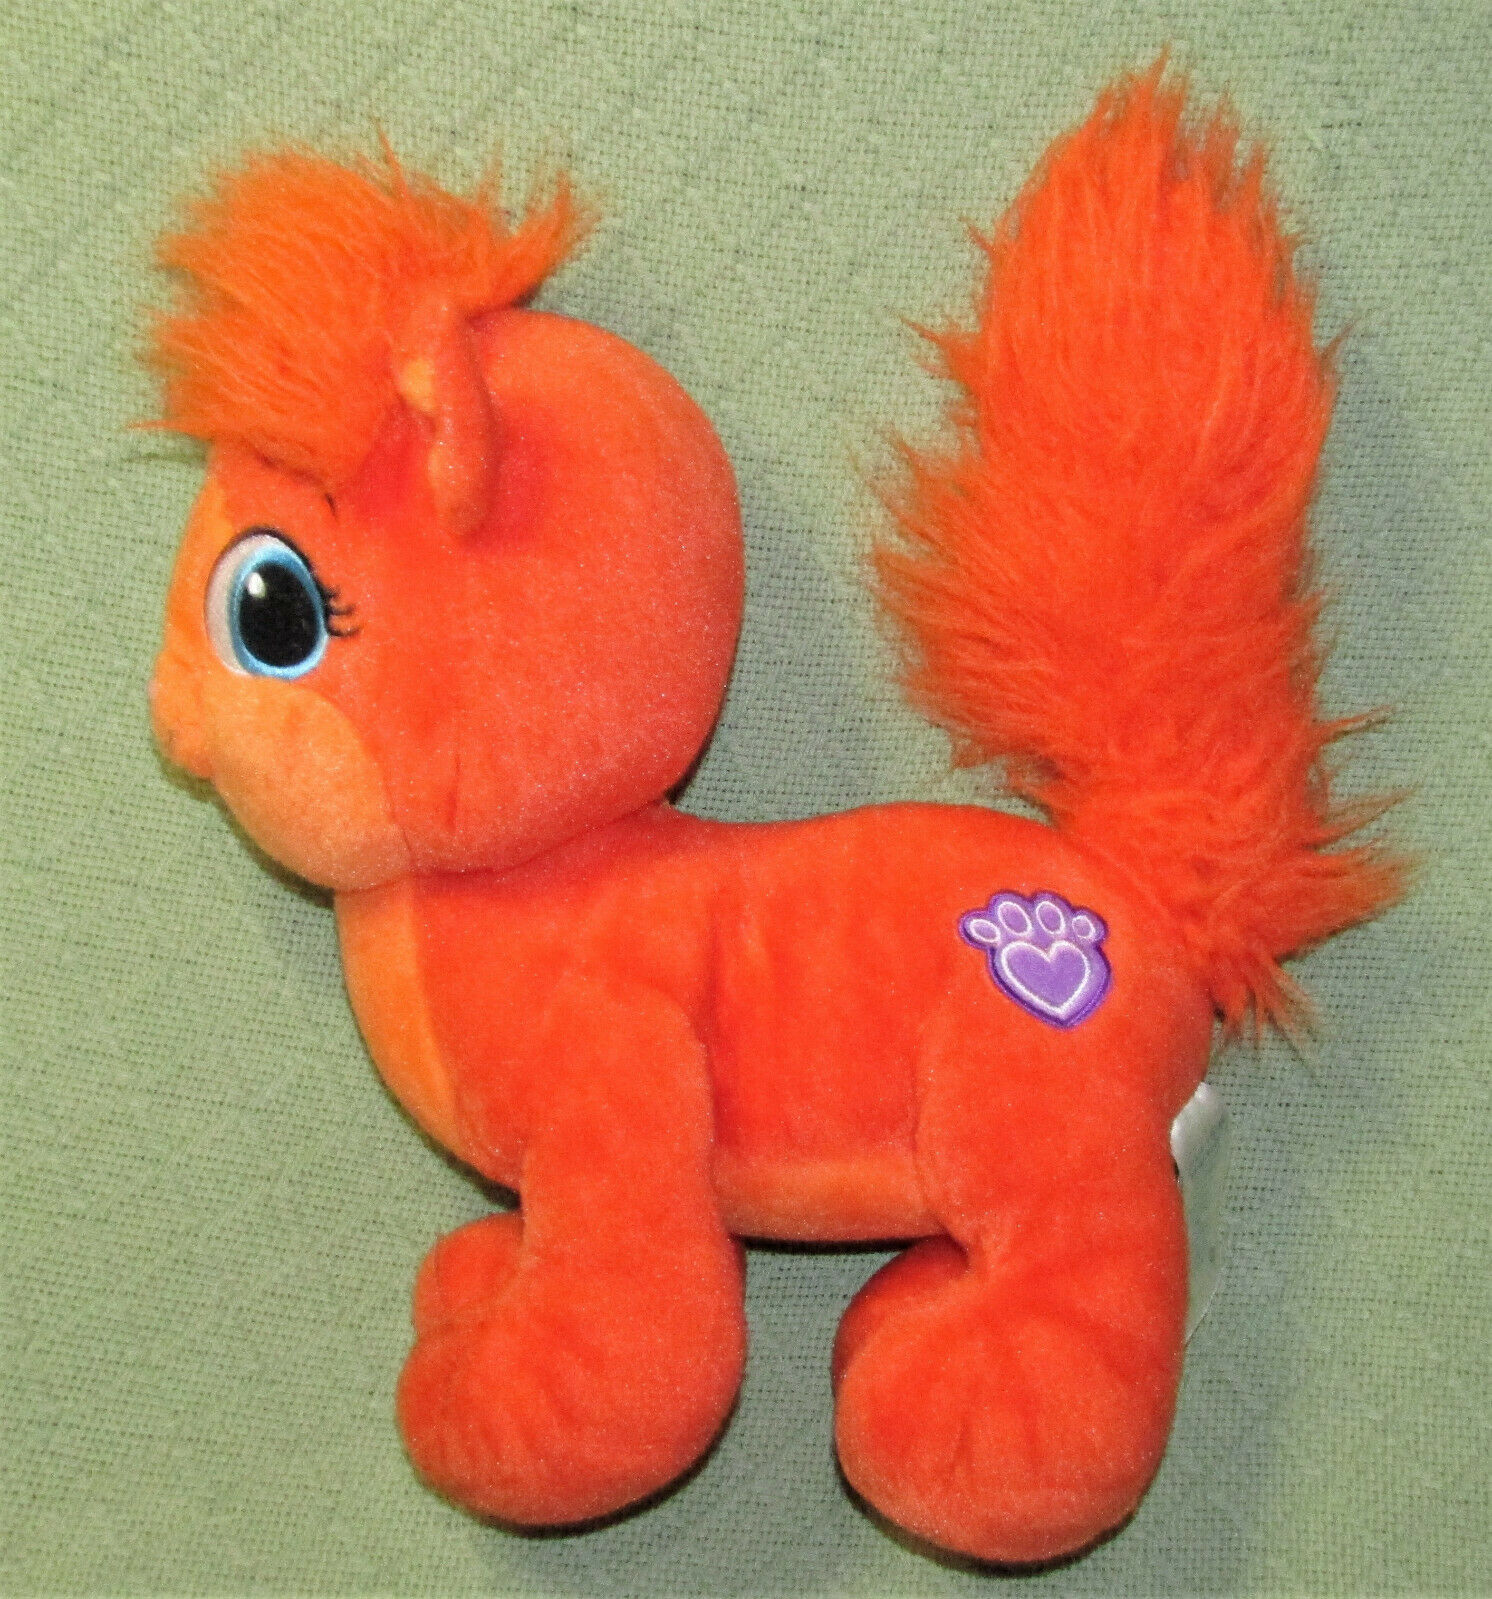 "Primary image for 12"" BUILD A BEAR DISNEY TREASURE ARIEL CAT ORANGE STUFFED ANIMAL LITTLE MERMAID"